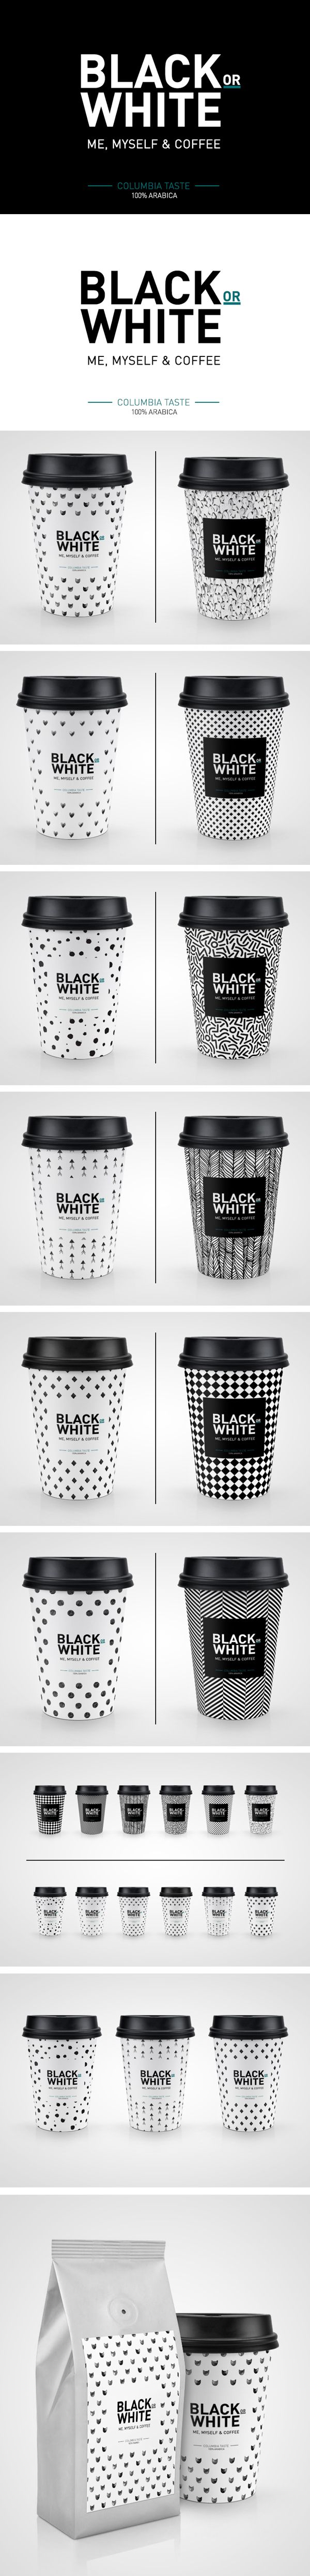 Black or White Coffee Mock-up on Behance